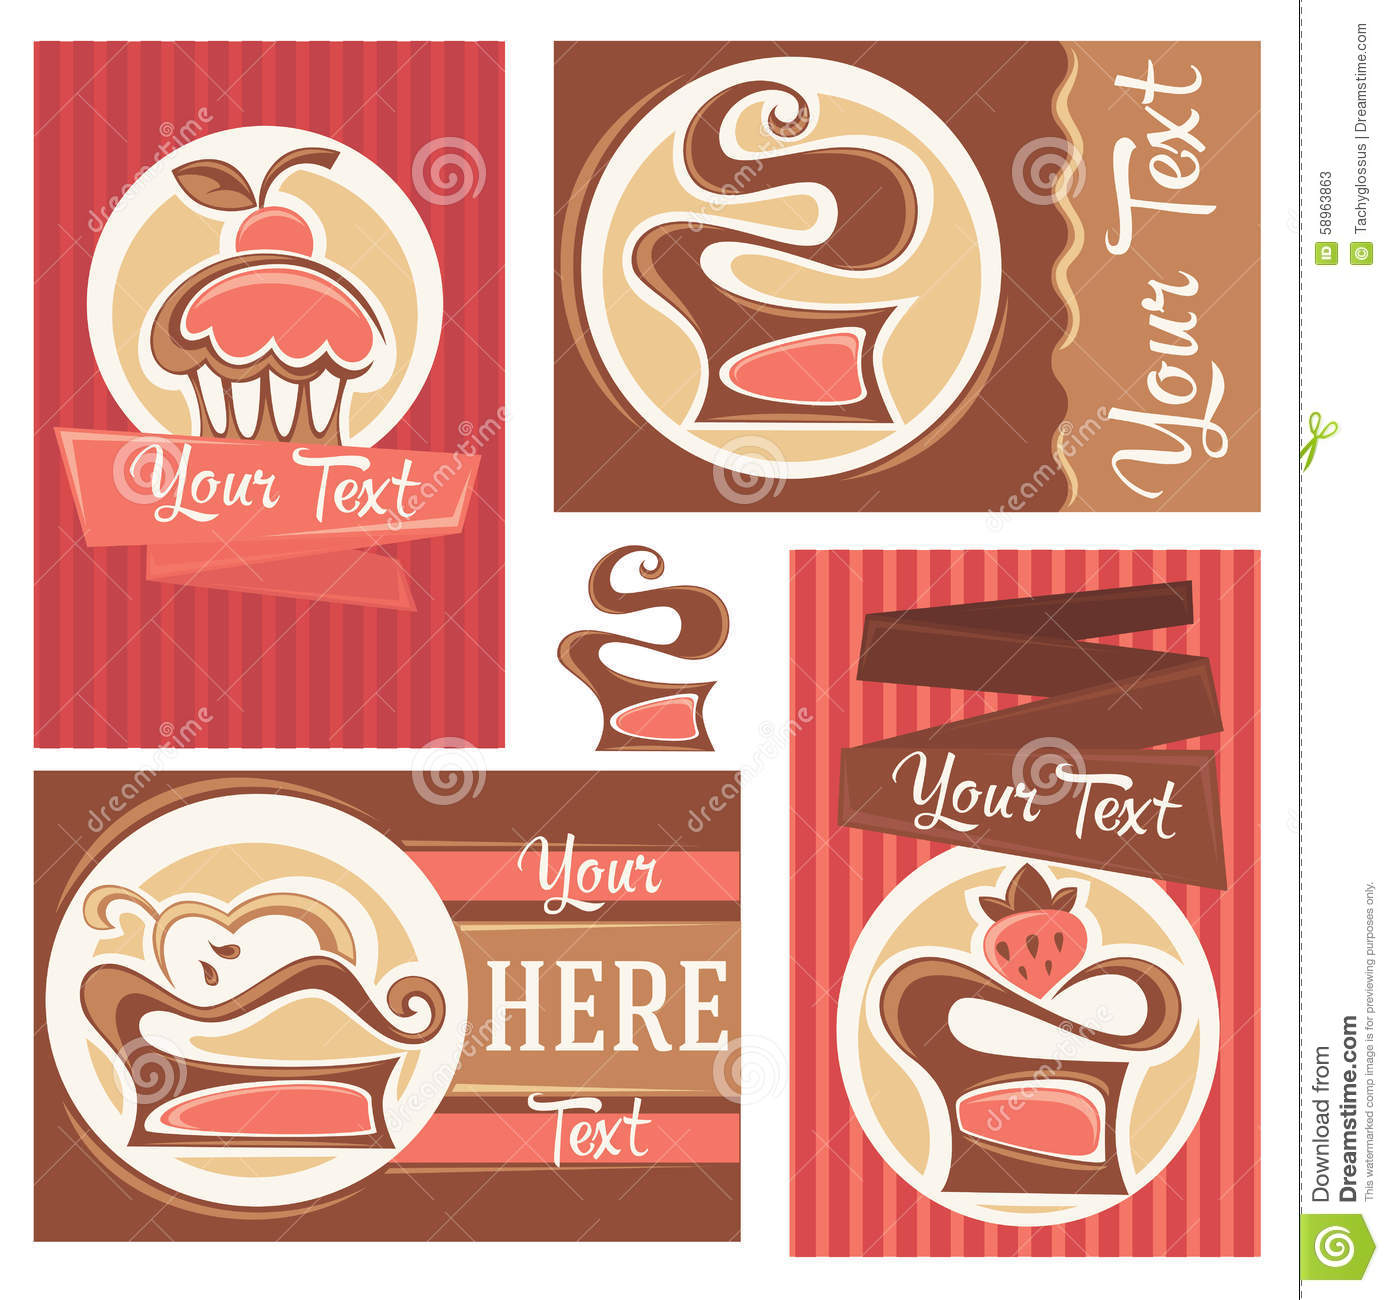 Cakes business cards stock vector. Illustration of decoration - 58963863